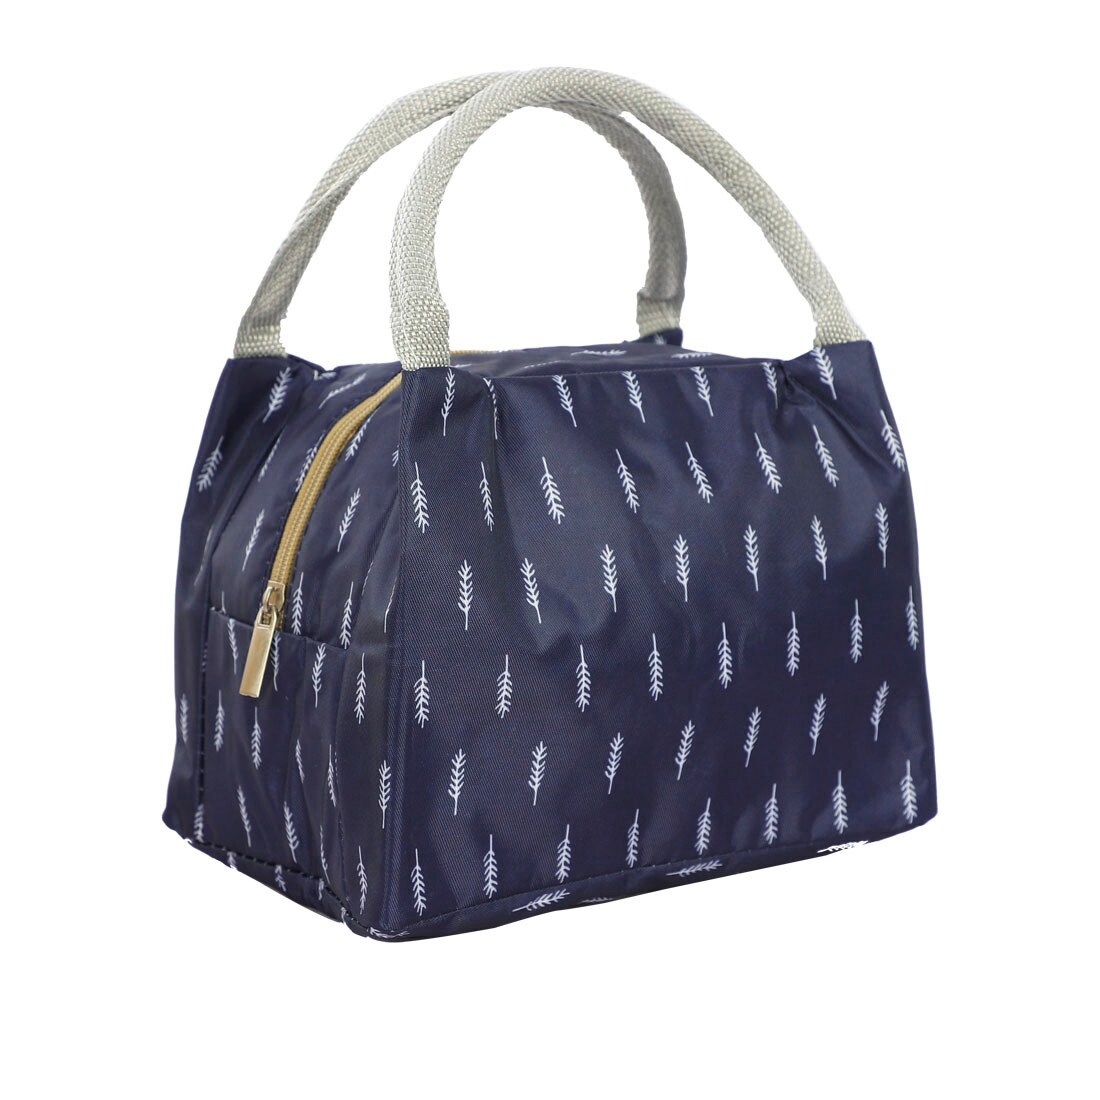 Blue and White Dot Zippered Padded Lunch Bag Tote Bag Purse Cotton Handmade